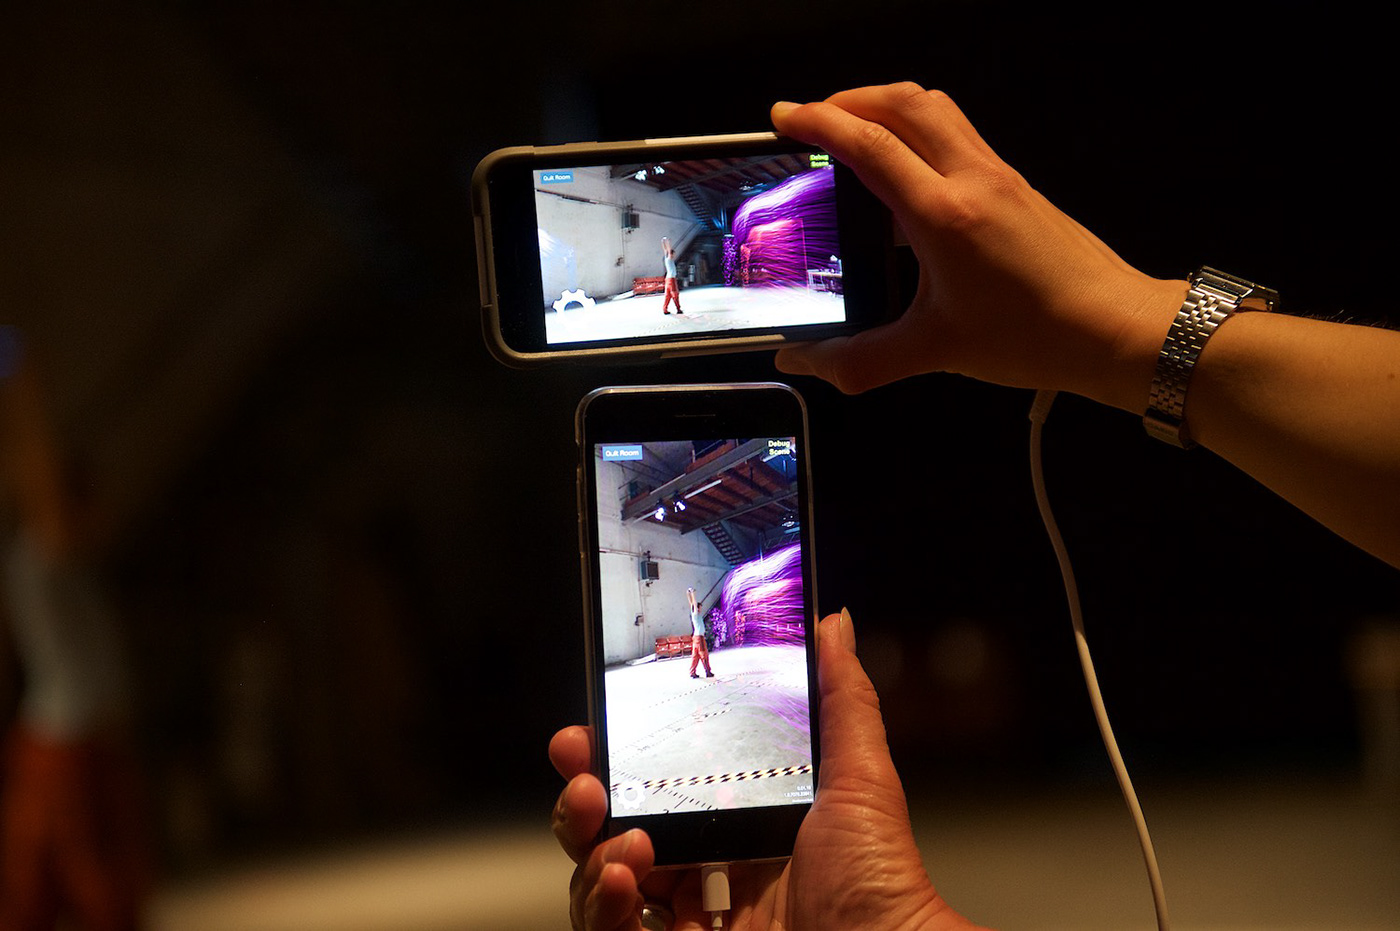 augmented reality DANCE   unity3D arkit Arcore performance art participative immersive multiplayer